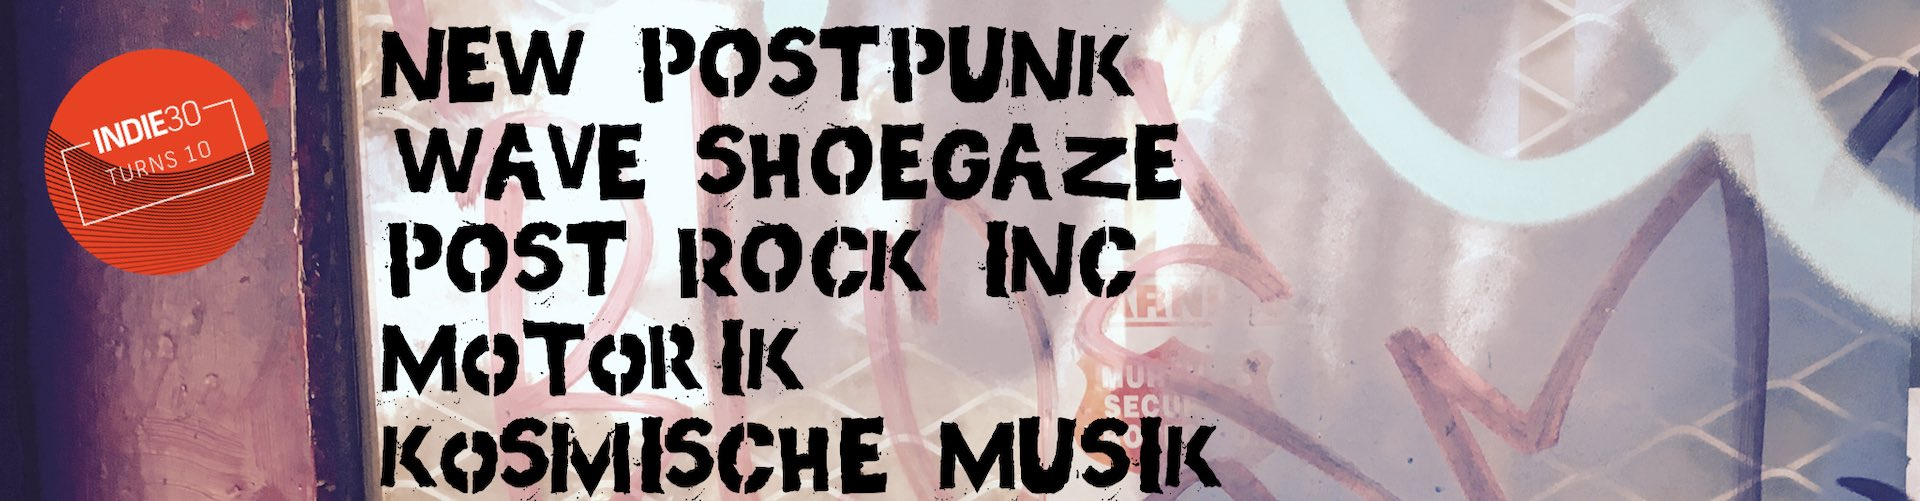 Post-Punk-Shoegaze-Et-Al-August-Banner-1-copy